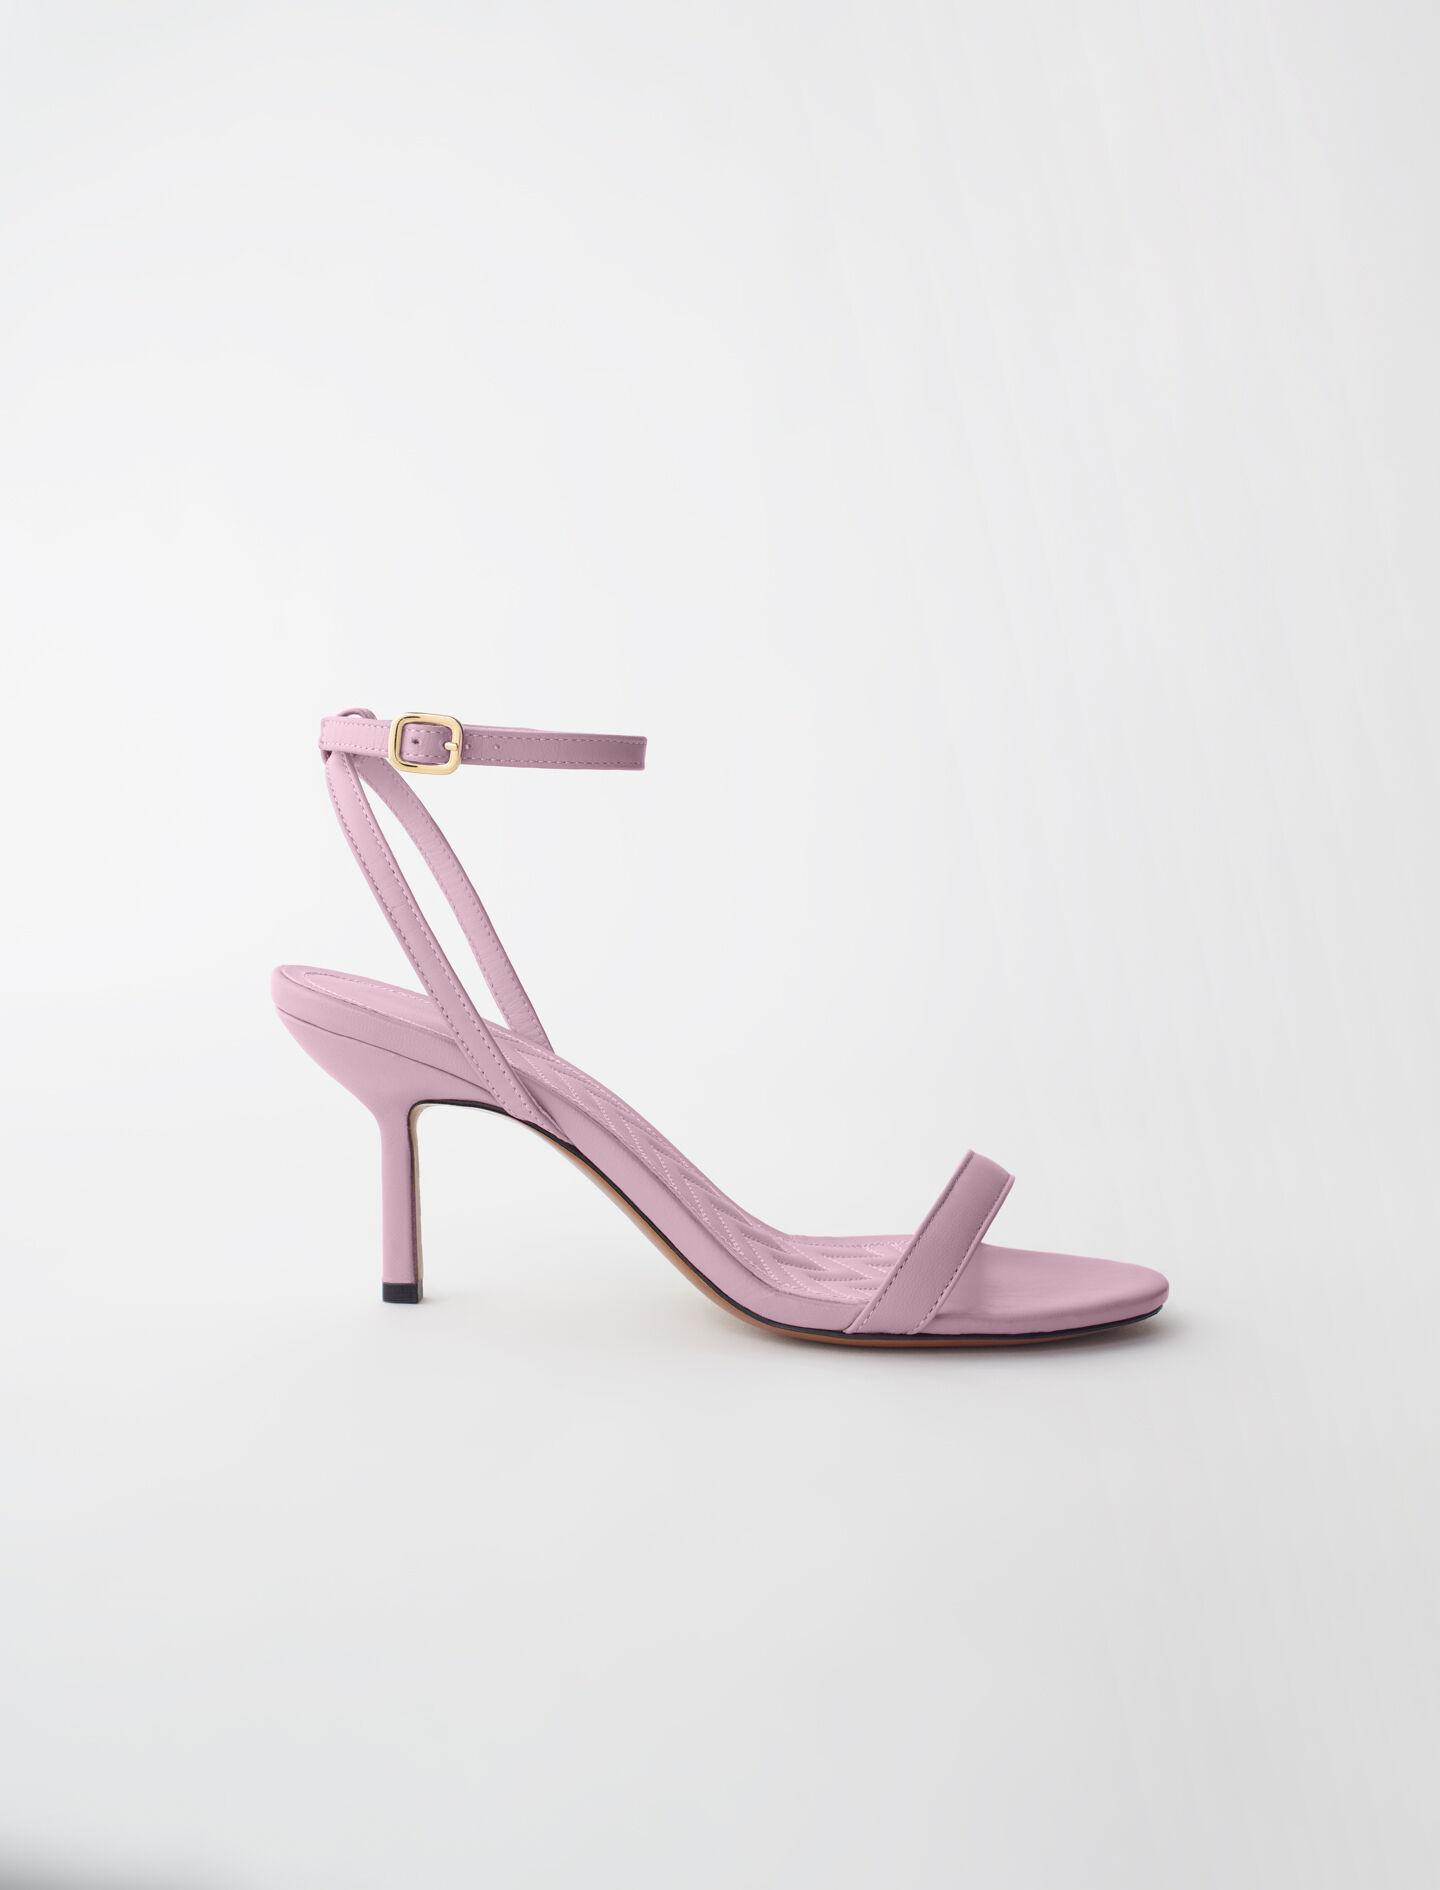 HIGH-HEELED SANDALS WITH LEATHER STRAPS